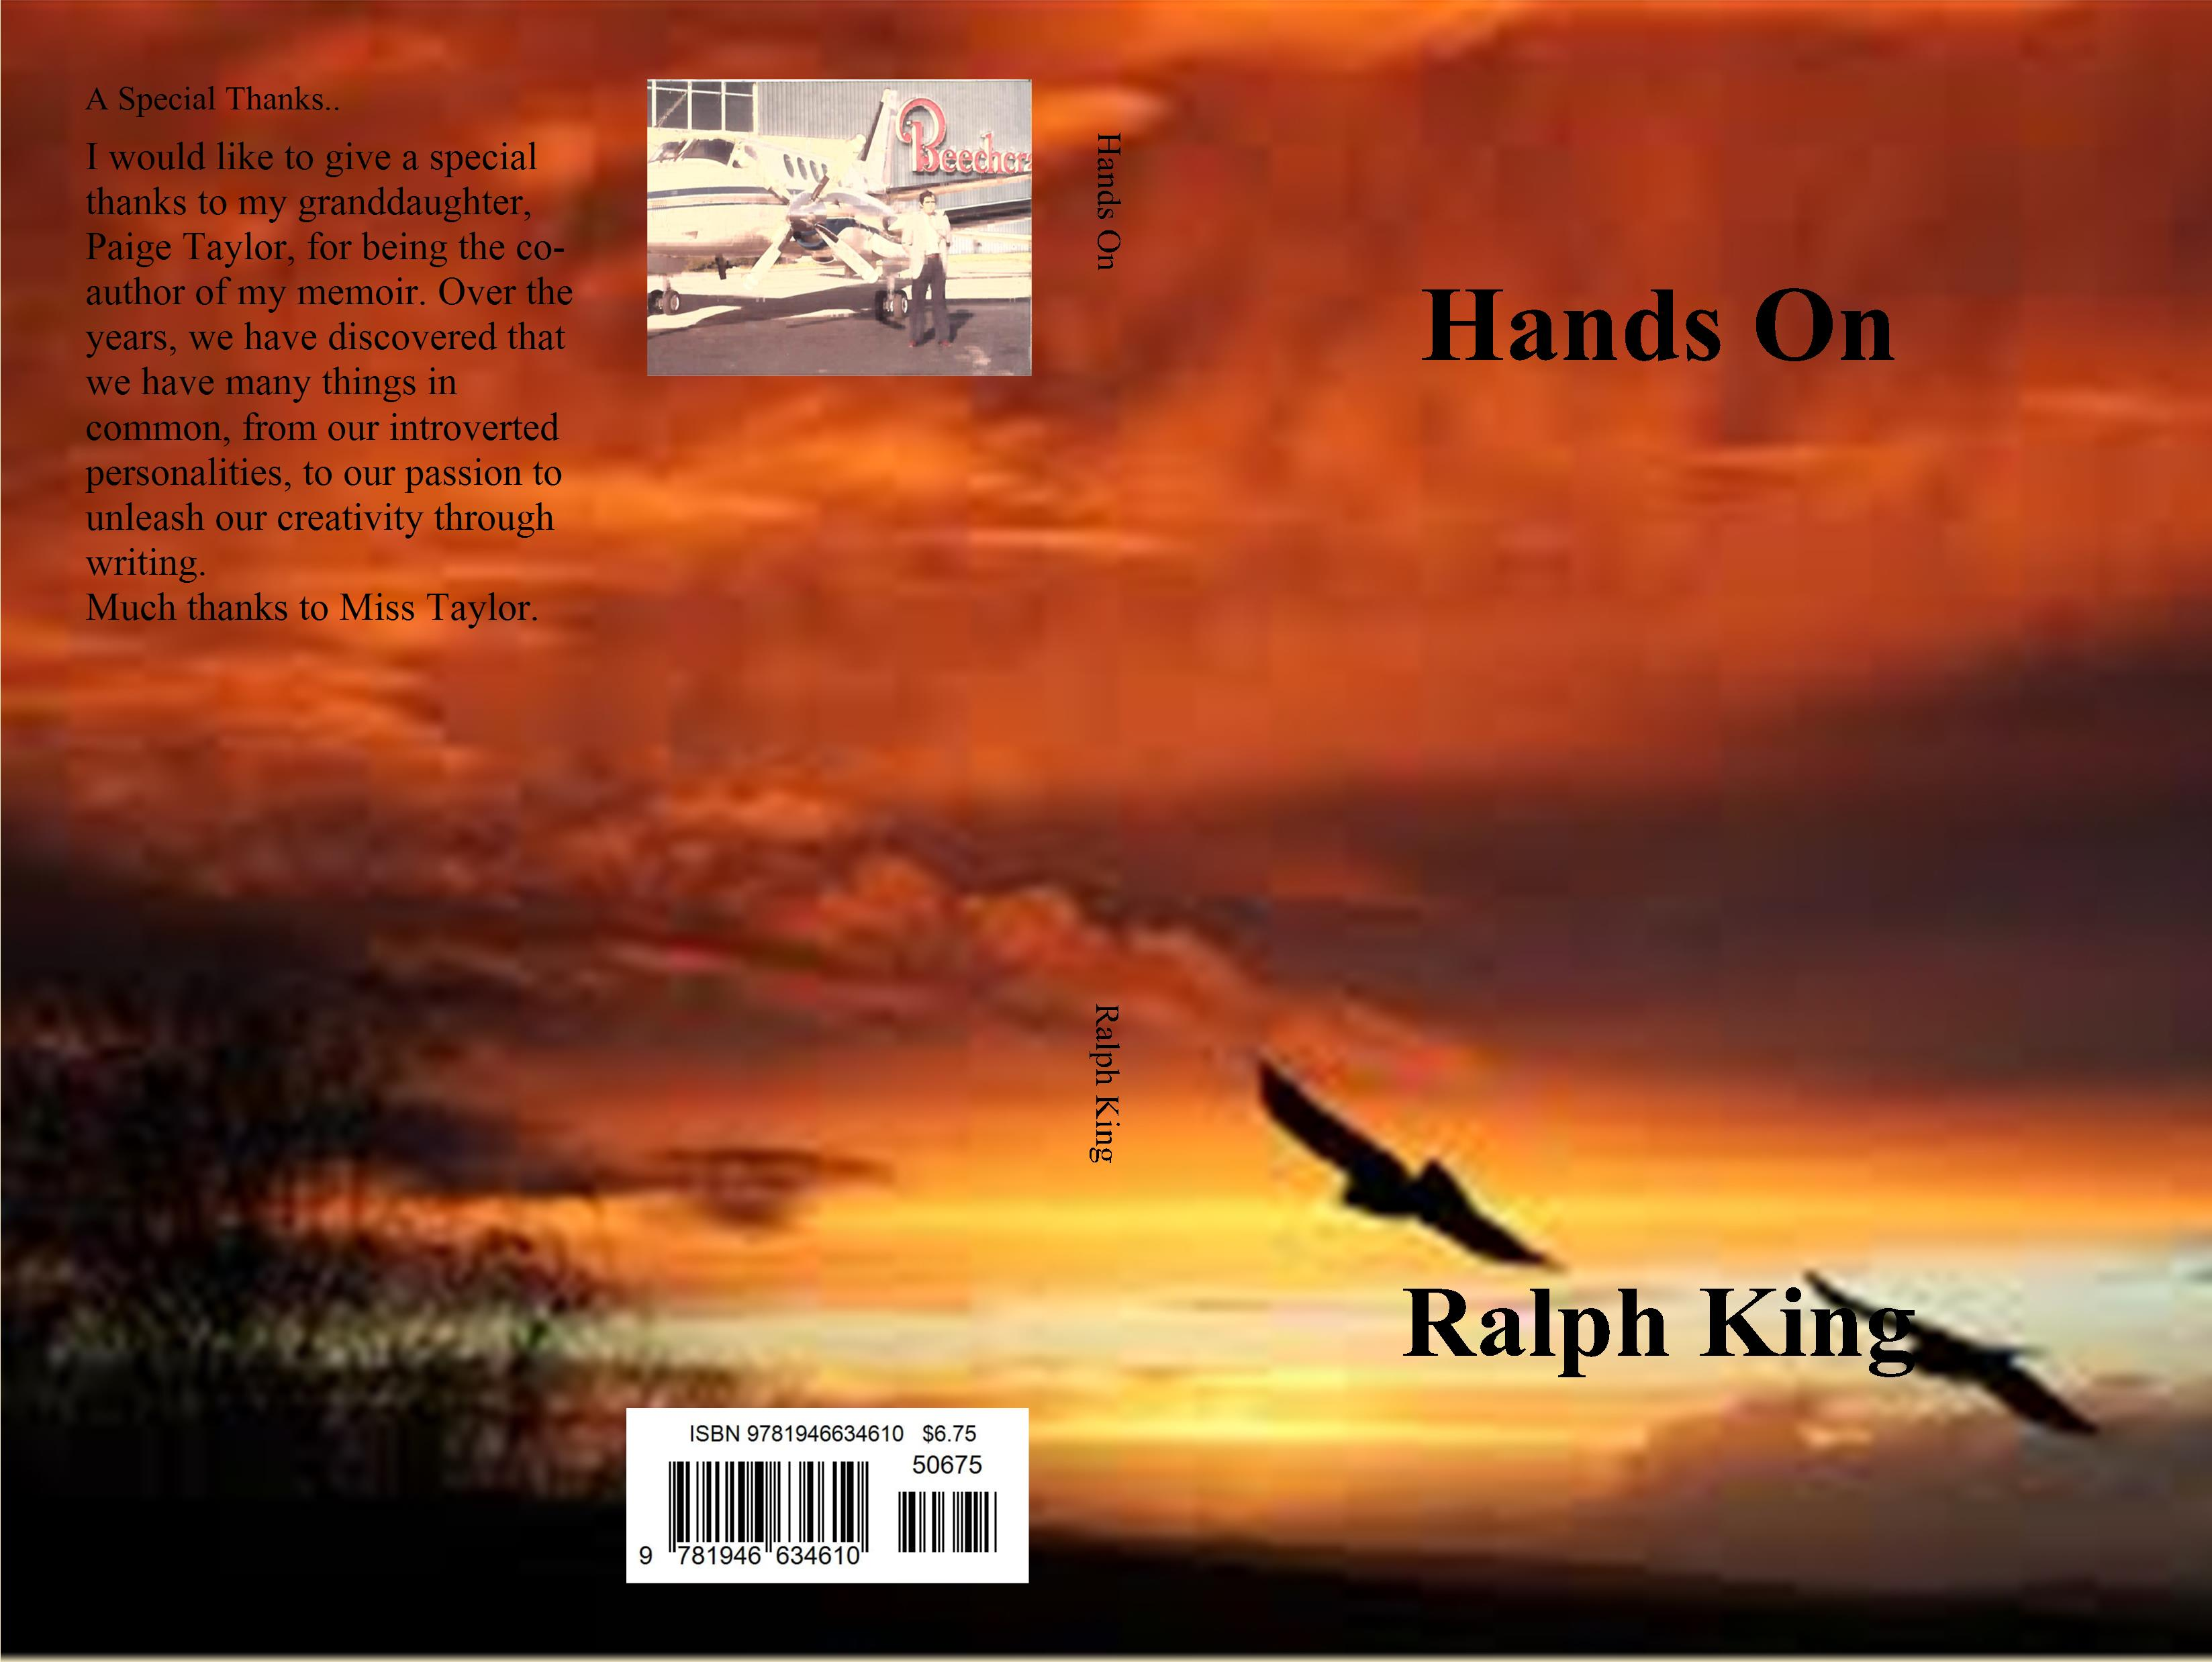 Hands On cover image